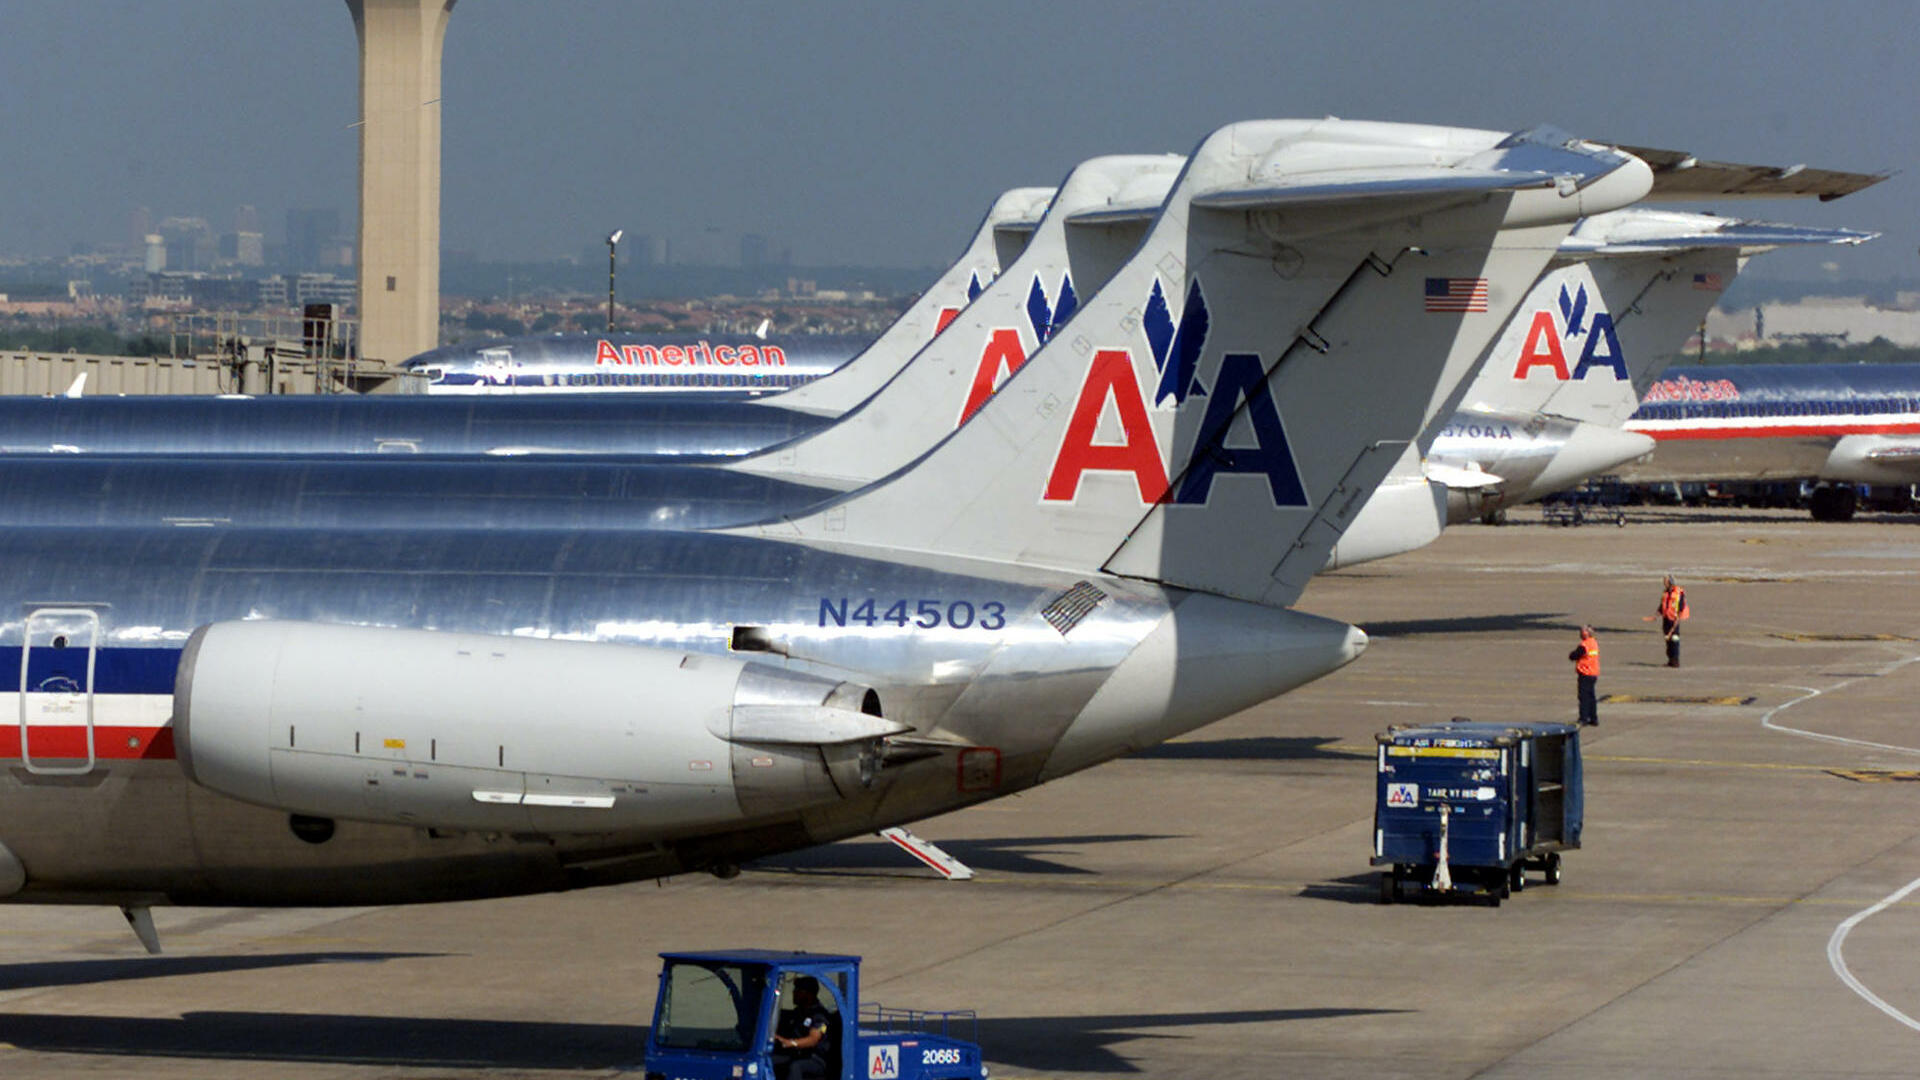 Airport Dallas/Fort Worth Quelle: AP